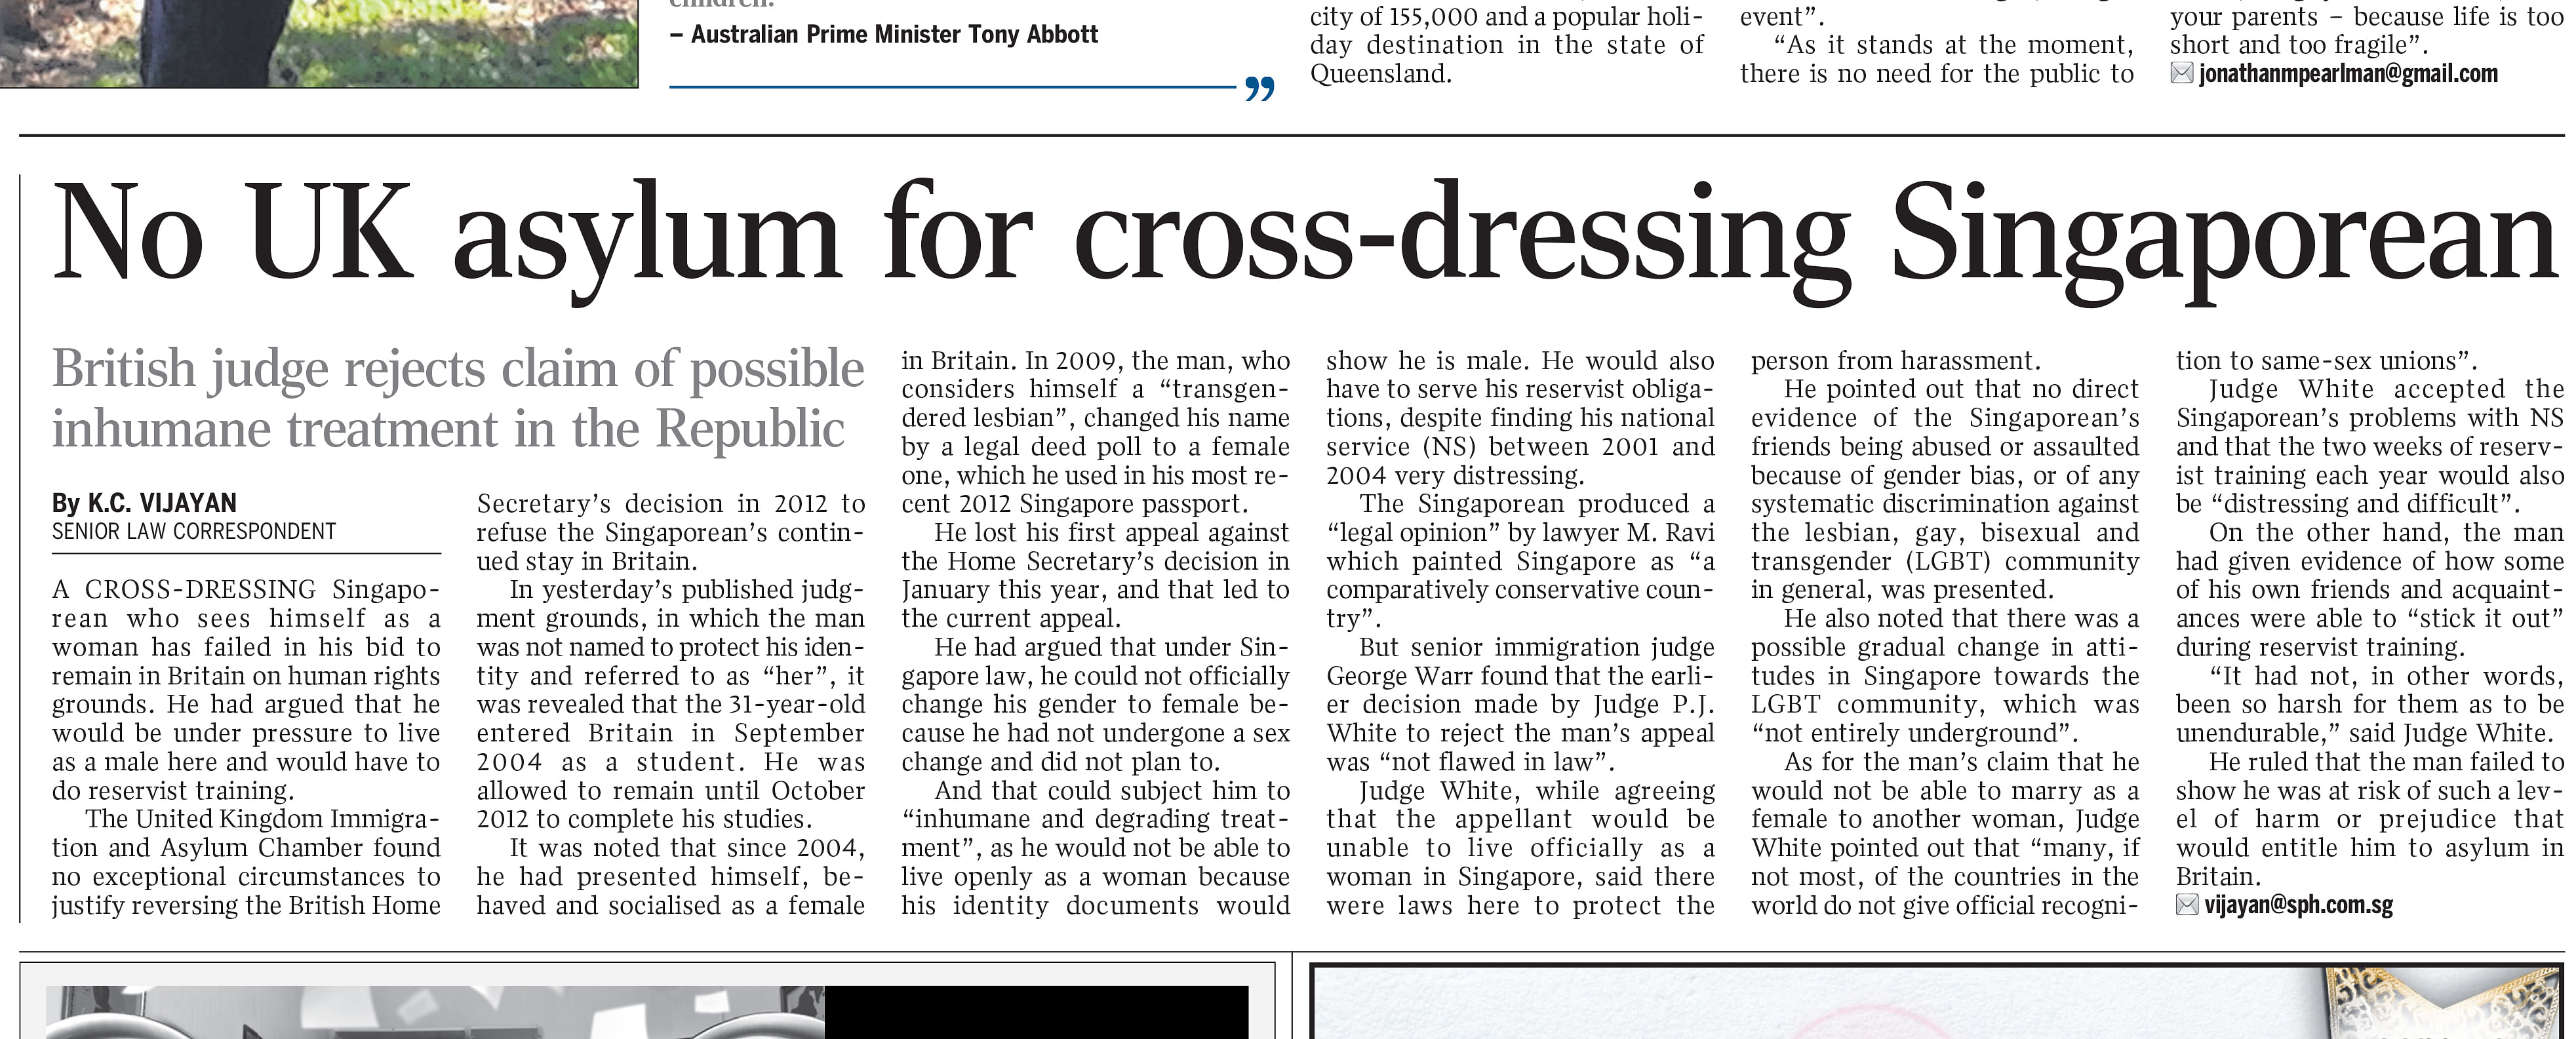 There Appears To Be An Unfortunate And Inappropriate Mis Use Of Gender Pronouns In The Article No Uk Asylum For Cross Dressing Singaporean